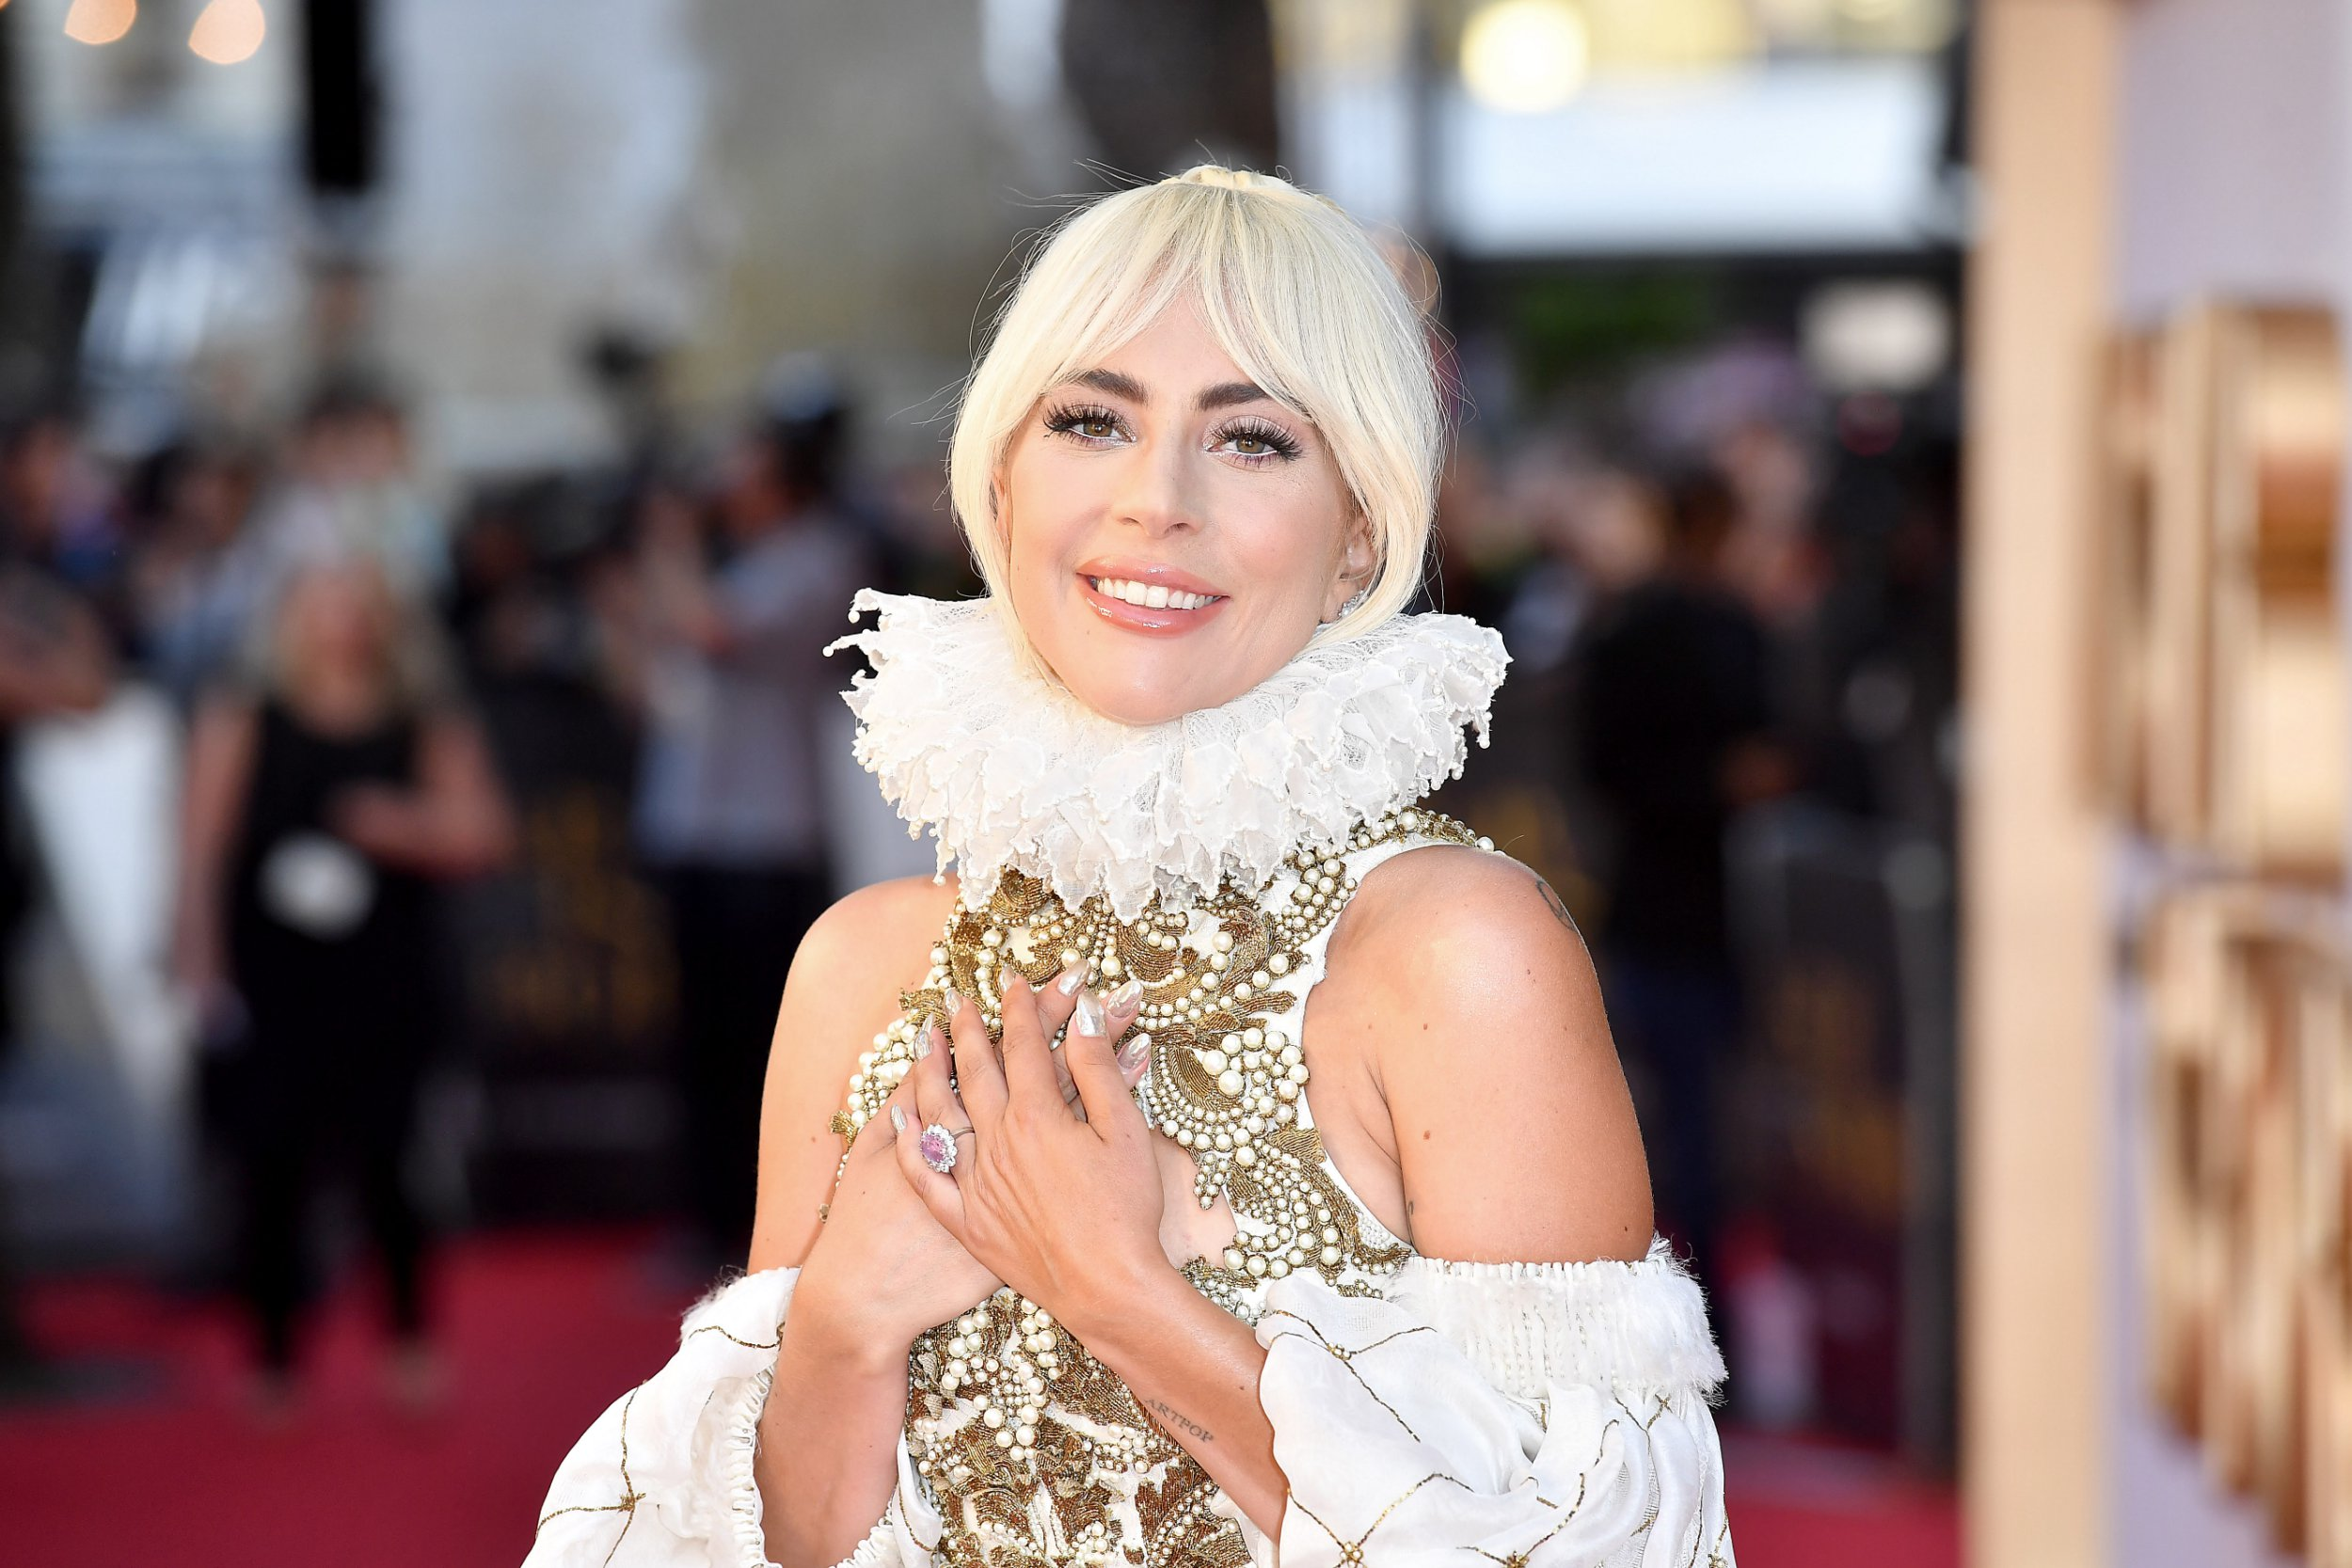 Lady Gaga on her way to Oscars glory after earning two Golden Globe nominations for A Star Is Born